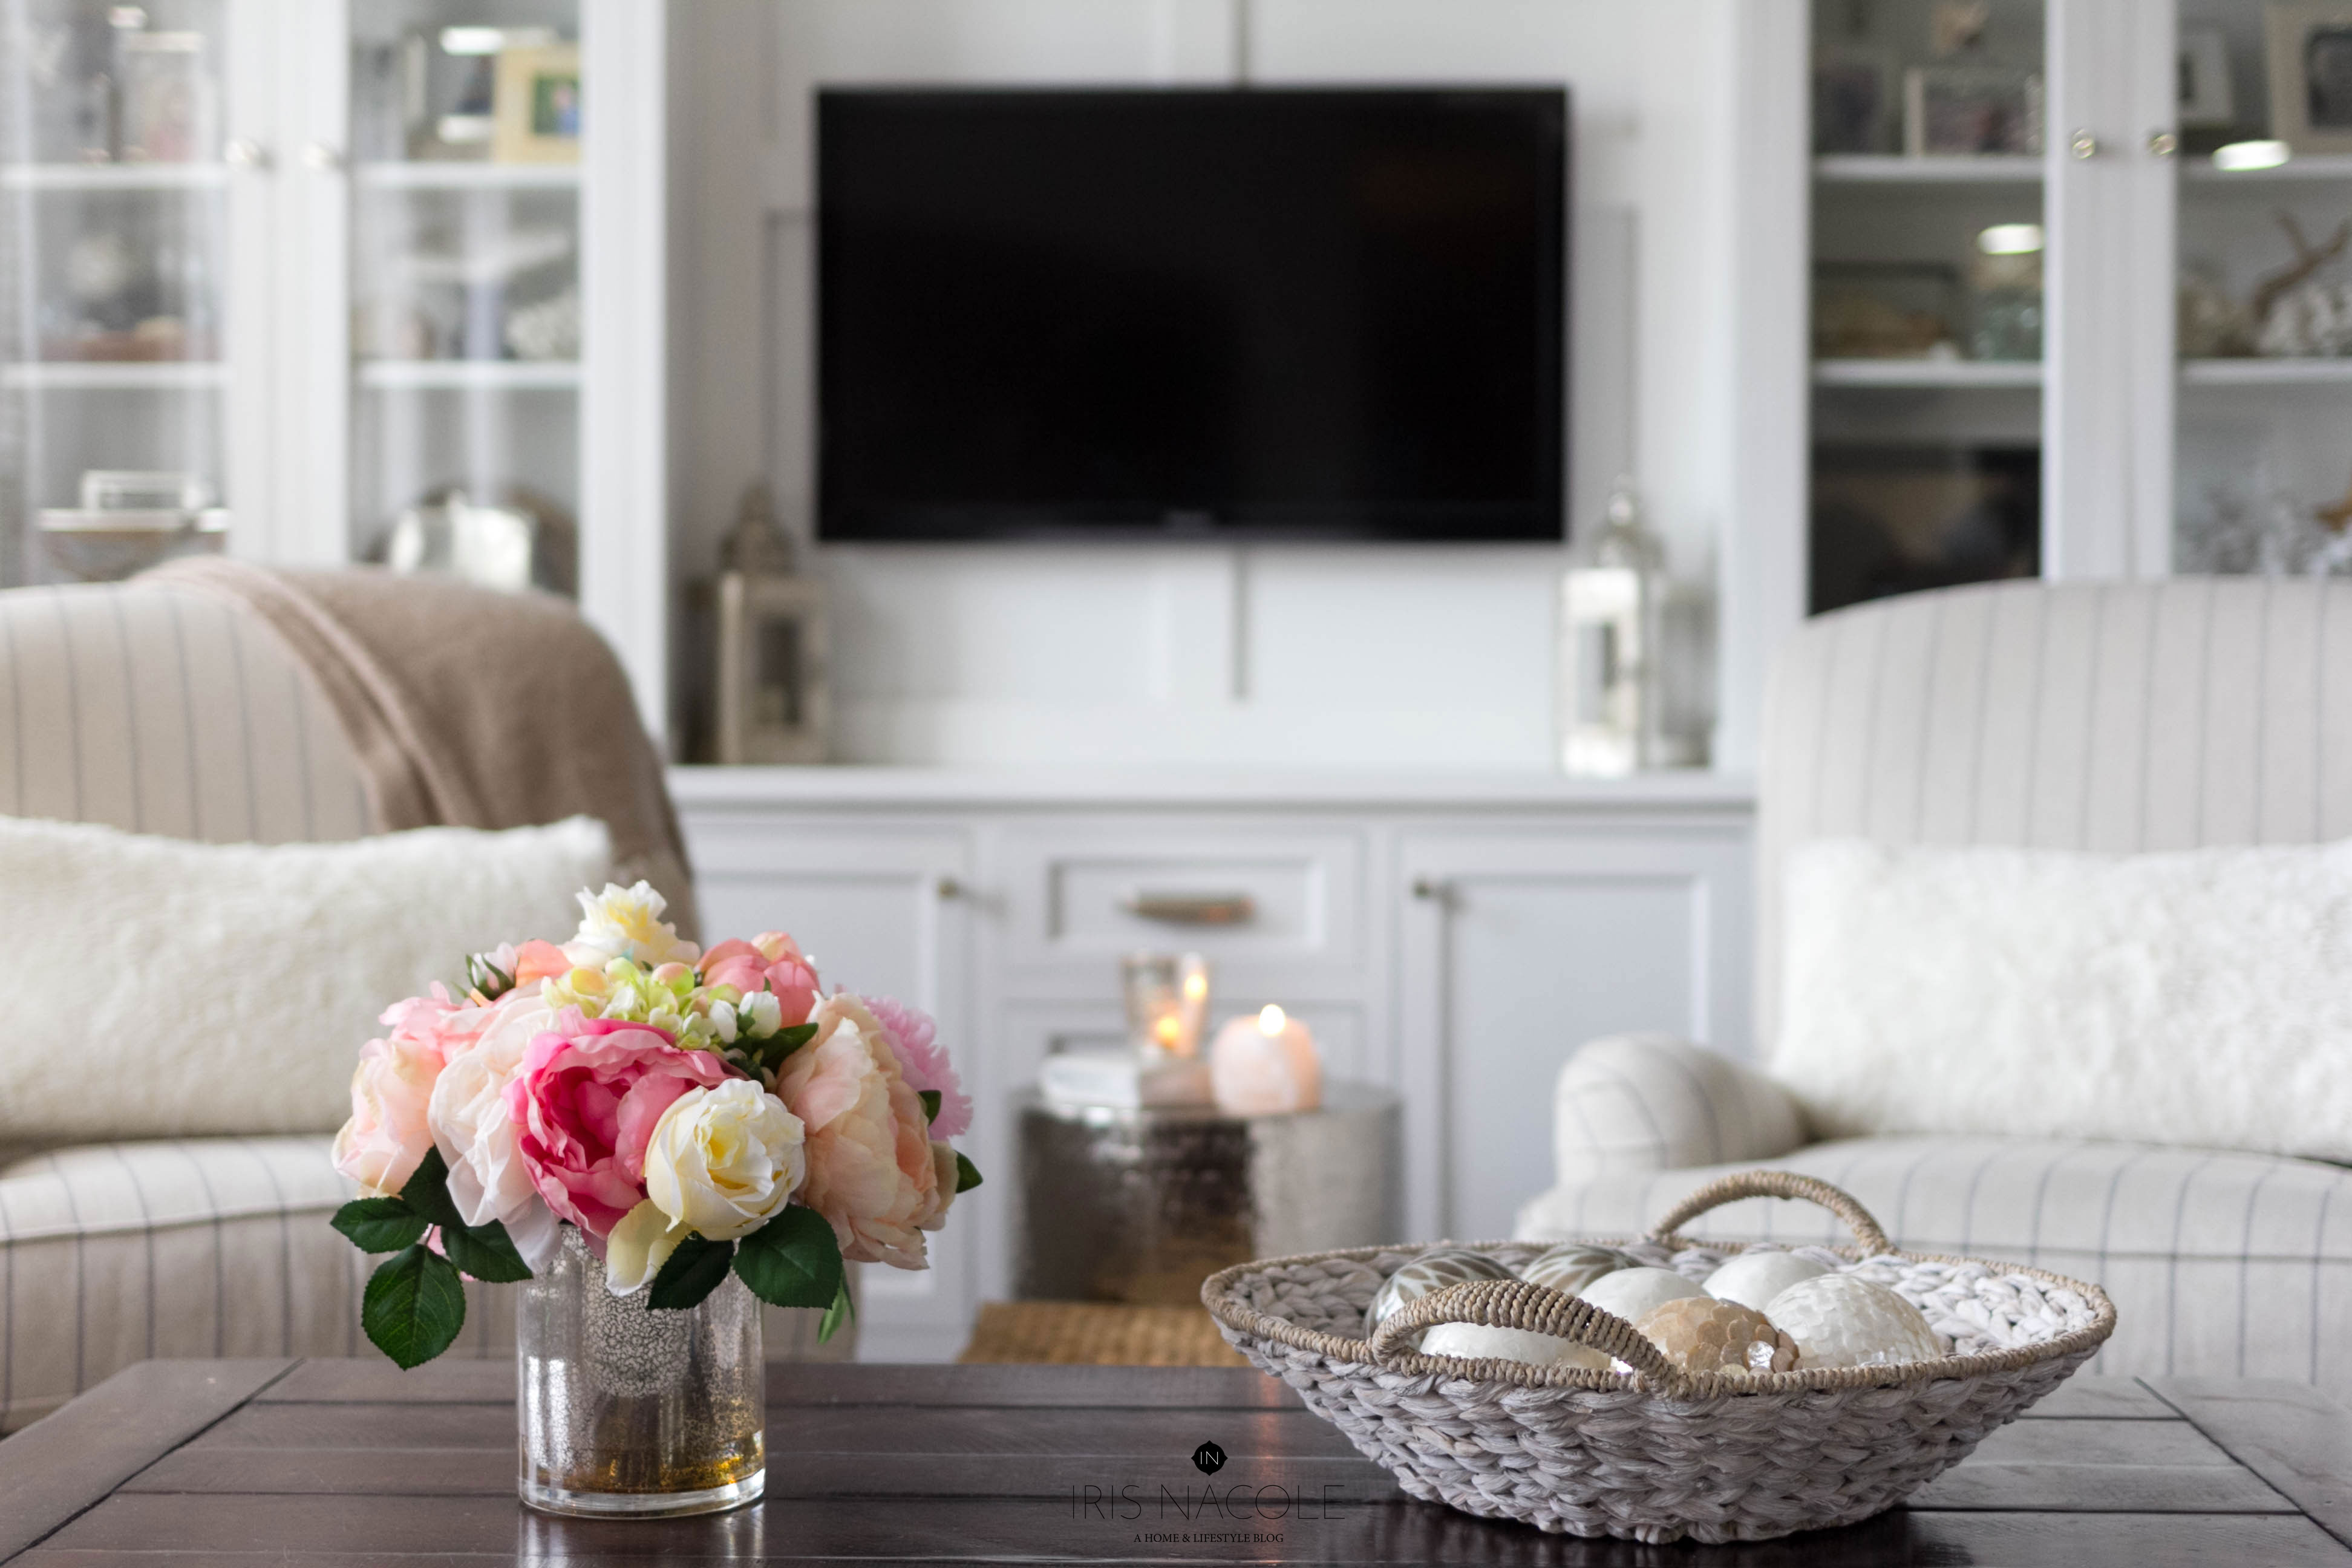 Living Room-Decor-Coffee Table-Pottery Barn-Lamps Plus Florals-Builtins-IrisNacole.com